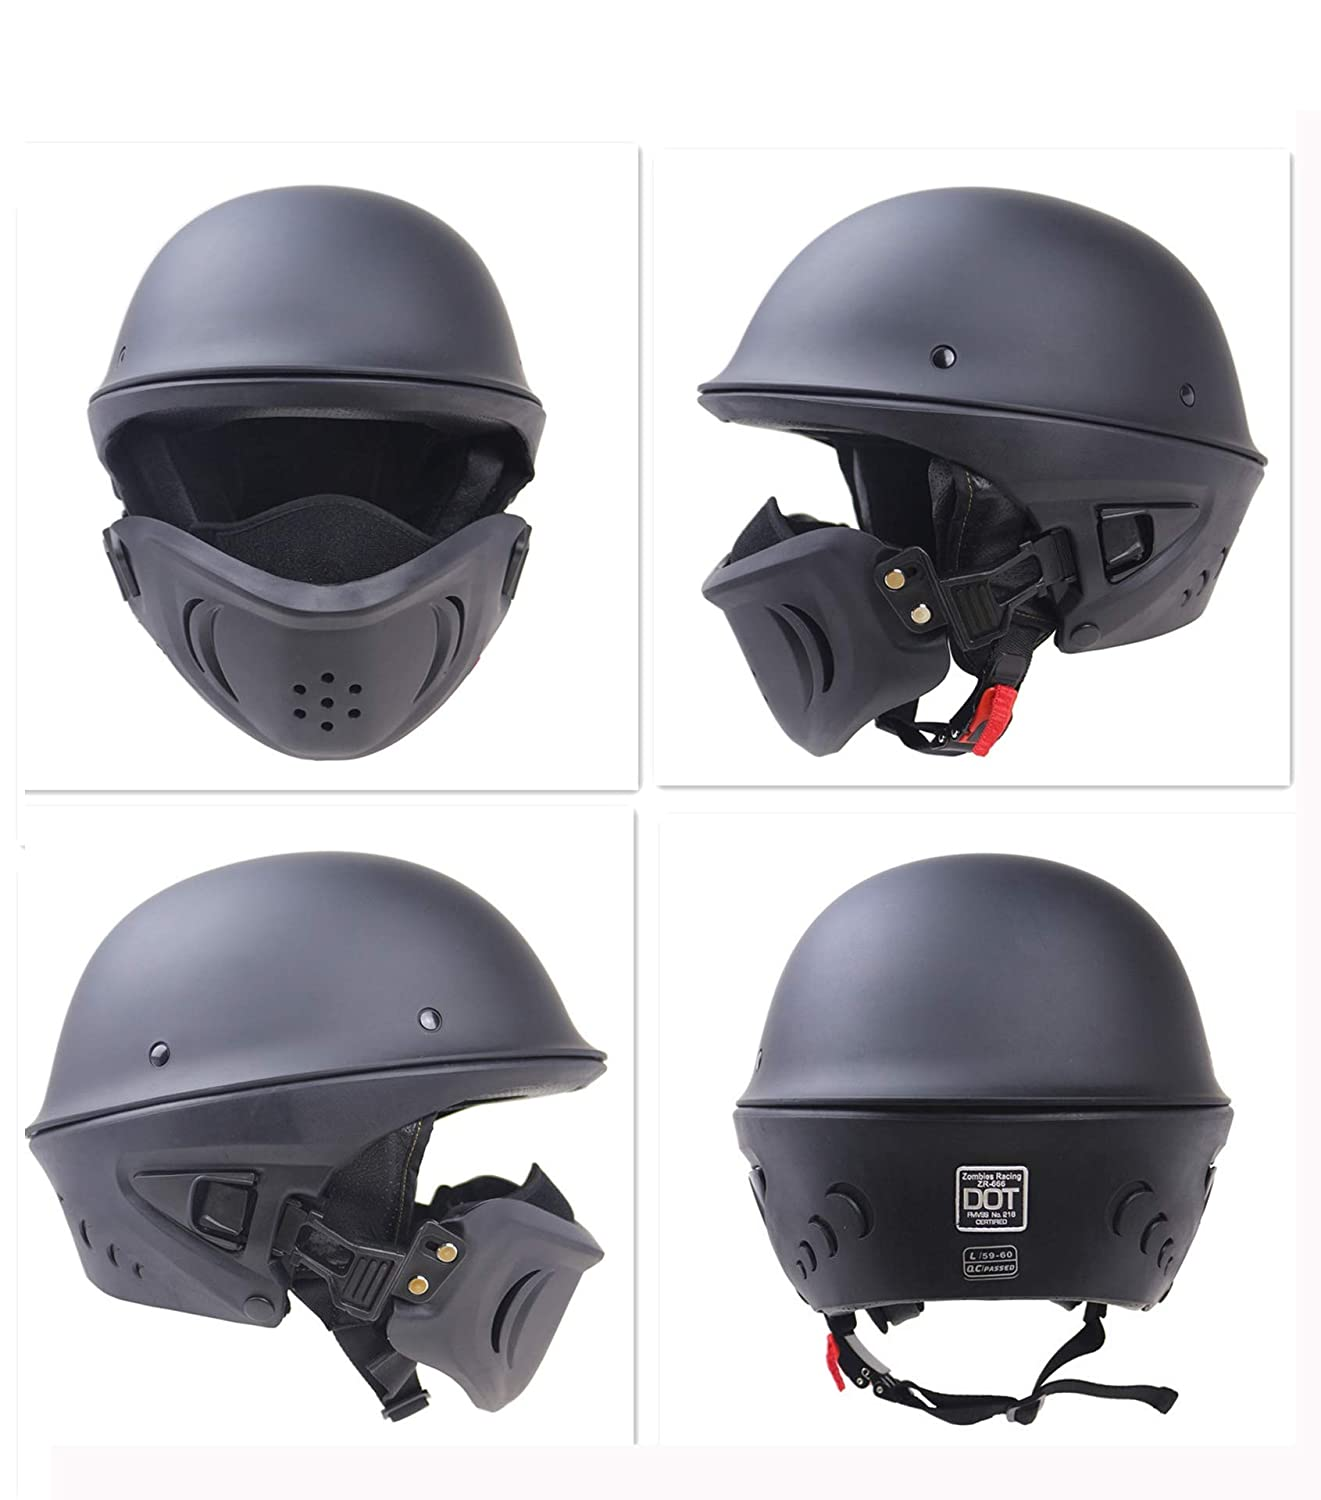 JohnnyLuLu Open Face Retro Motorcycle Crash Half Helmet Black D.O.T Approved with Cruiser Bobber Chopper Motorbike Scooter Racing Vintage Helmets for Adults ,S